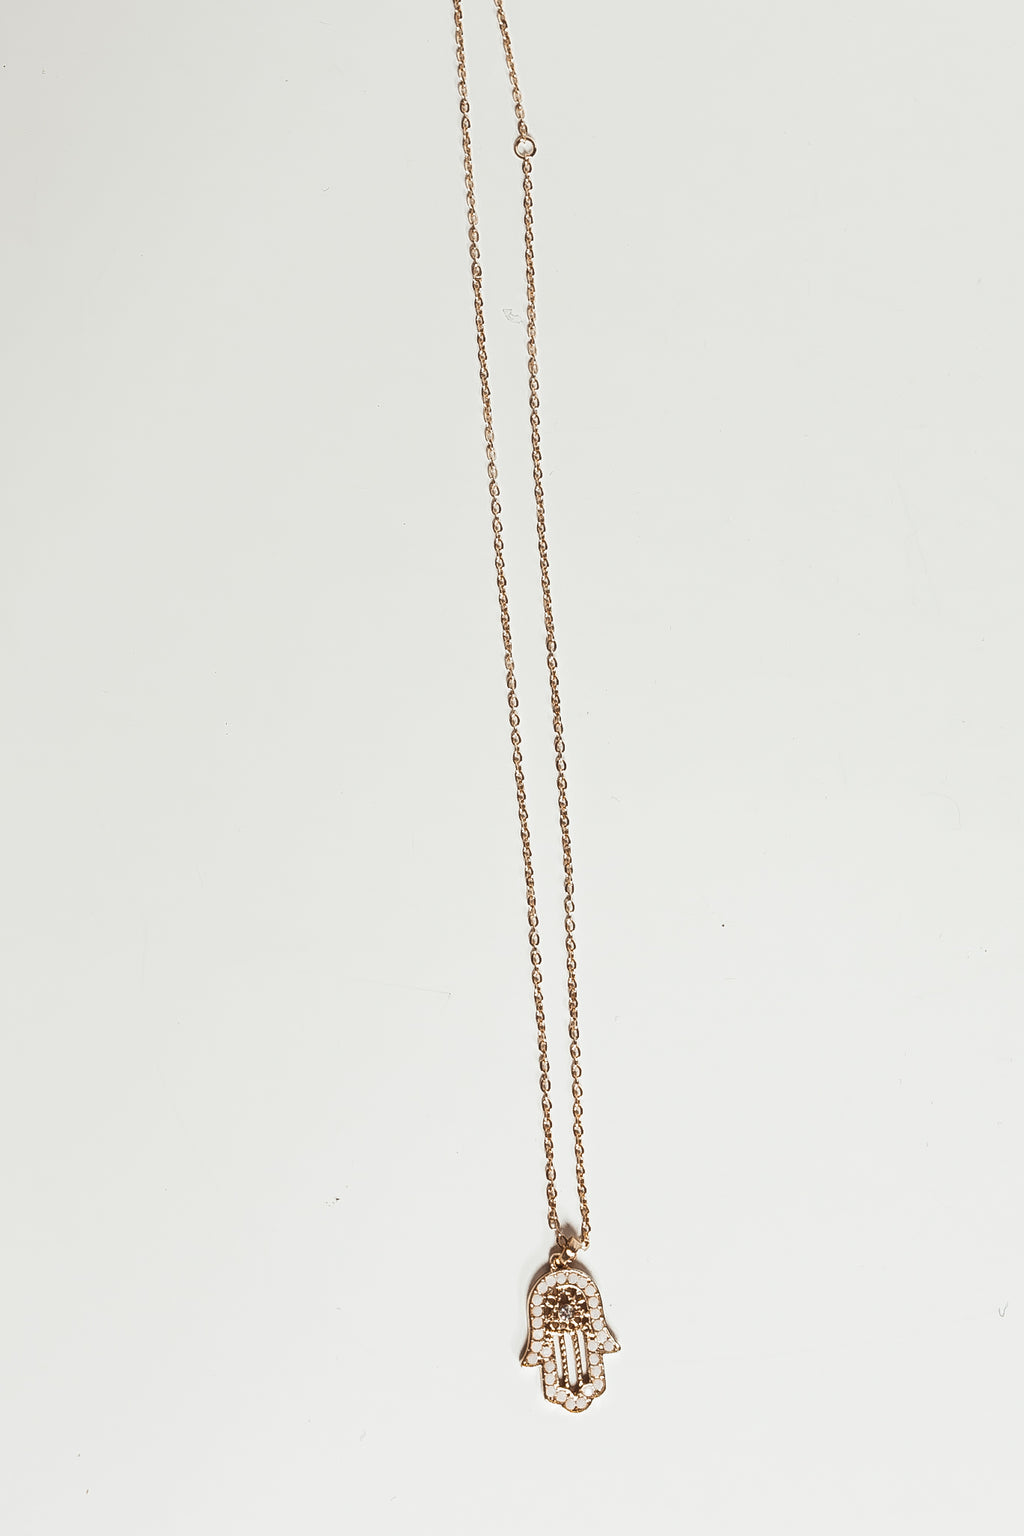 Petite Crystal Hand Pendant Necklace - White